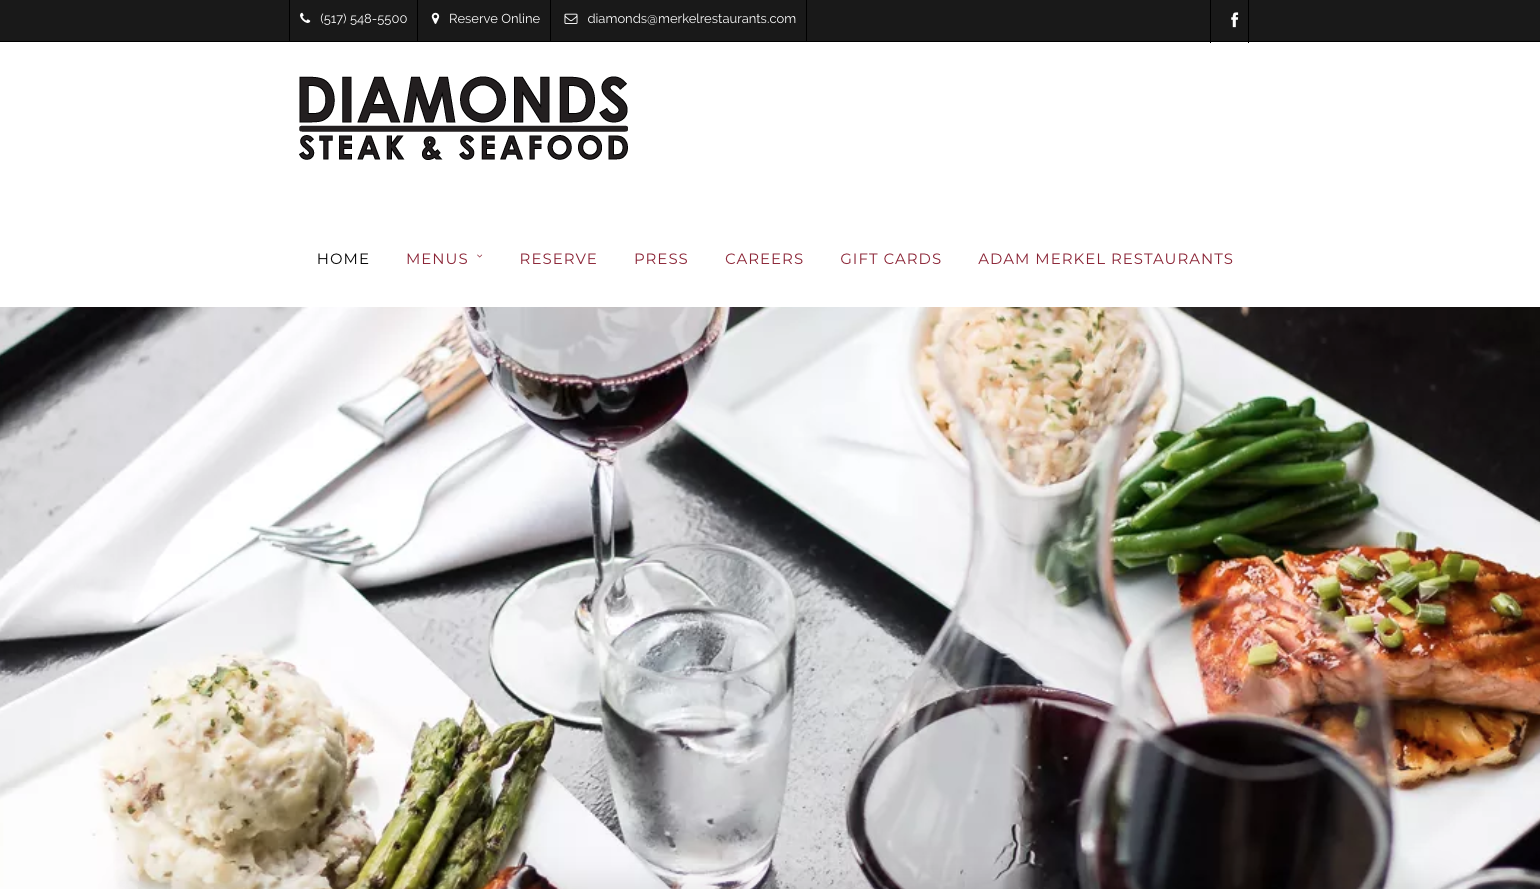 Diamonds Steaks and Seafood